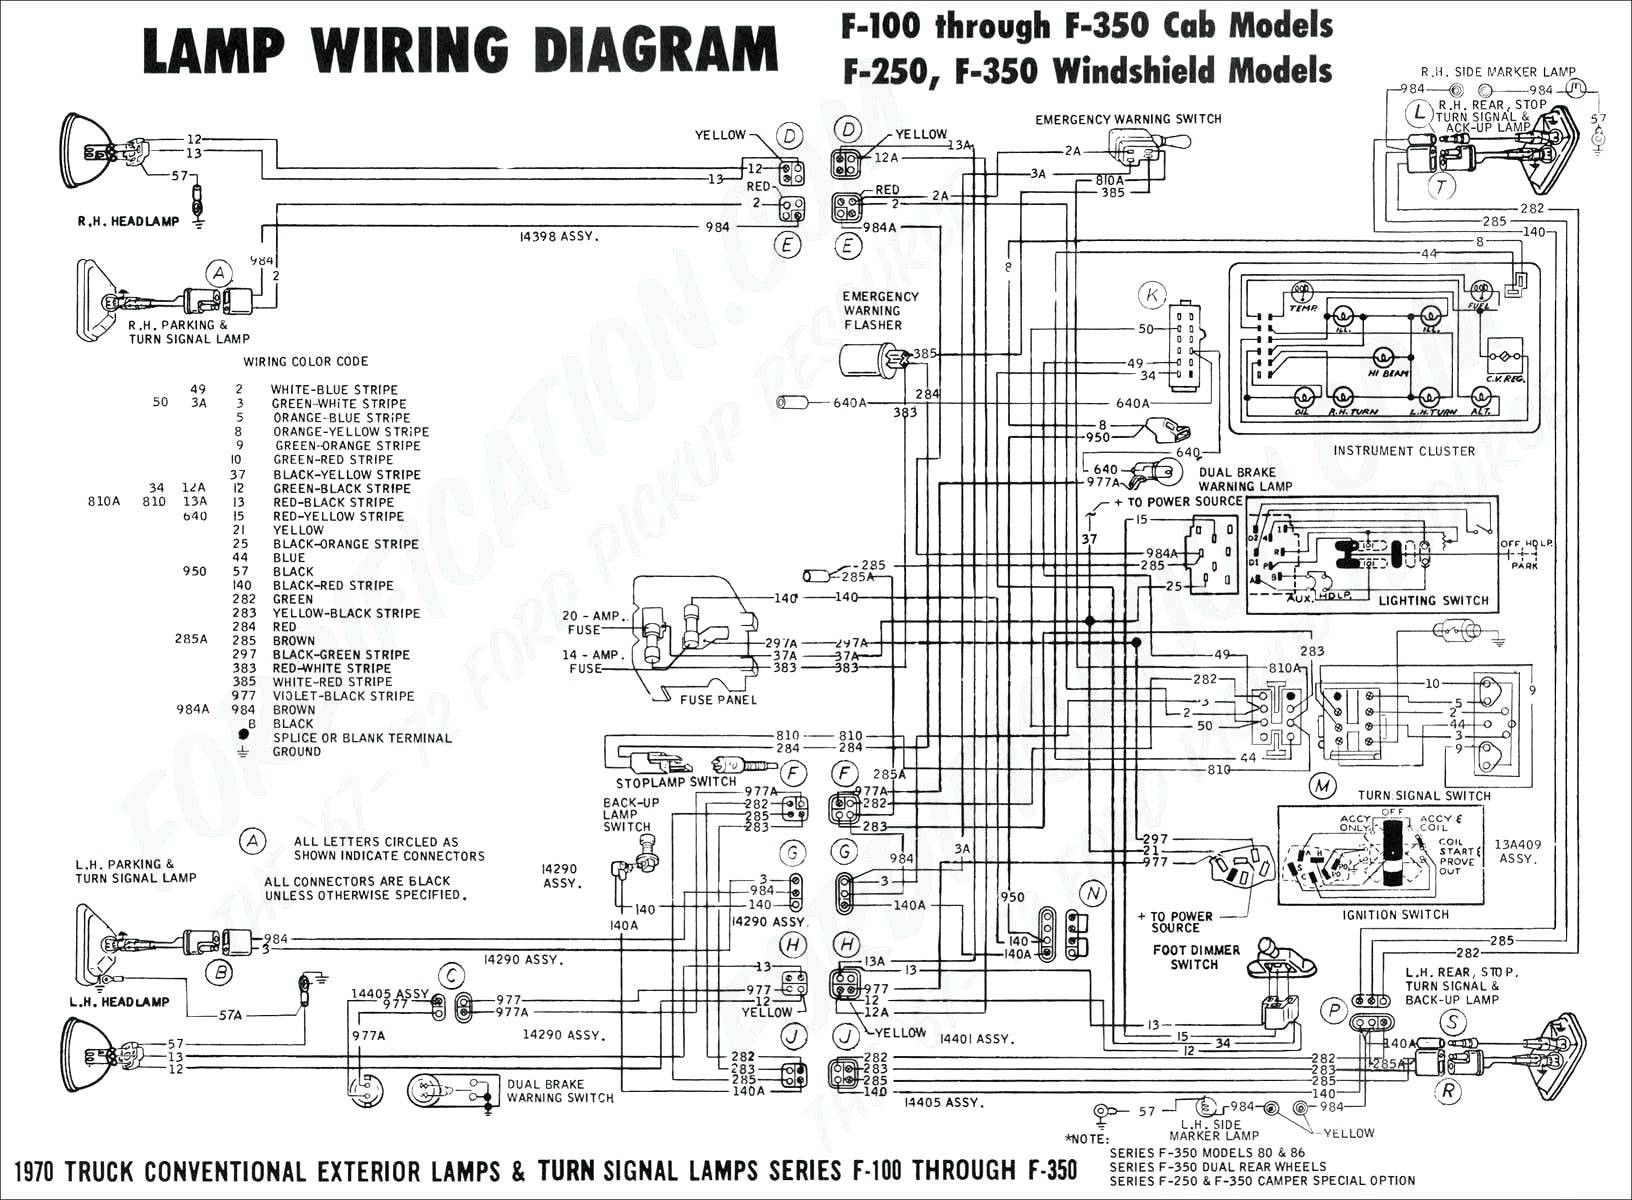 Get 2001 Ford F250 Trailer Wiring Diagram Sample - 2001 Trailer Wiring Diagram